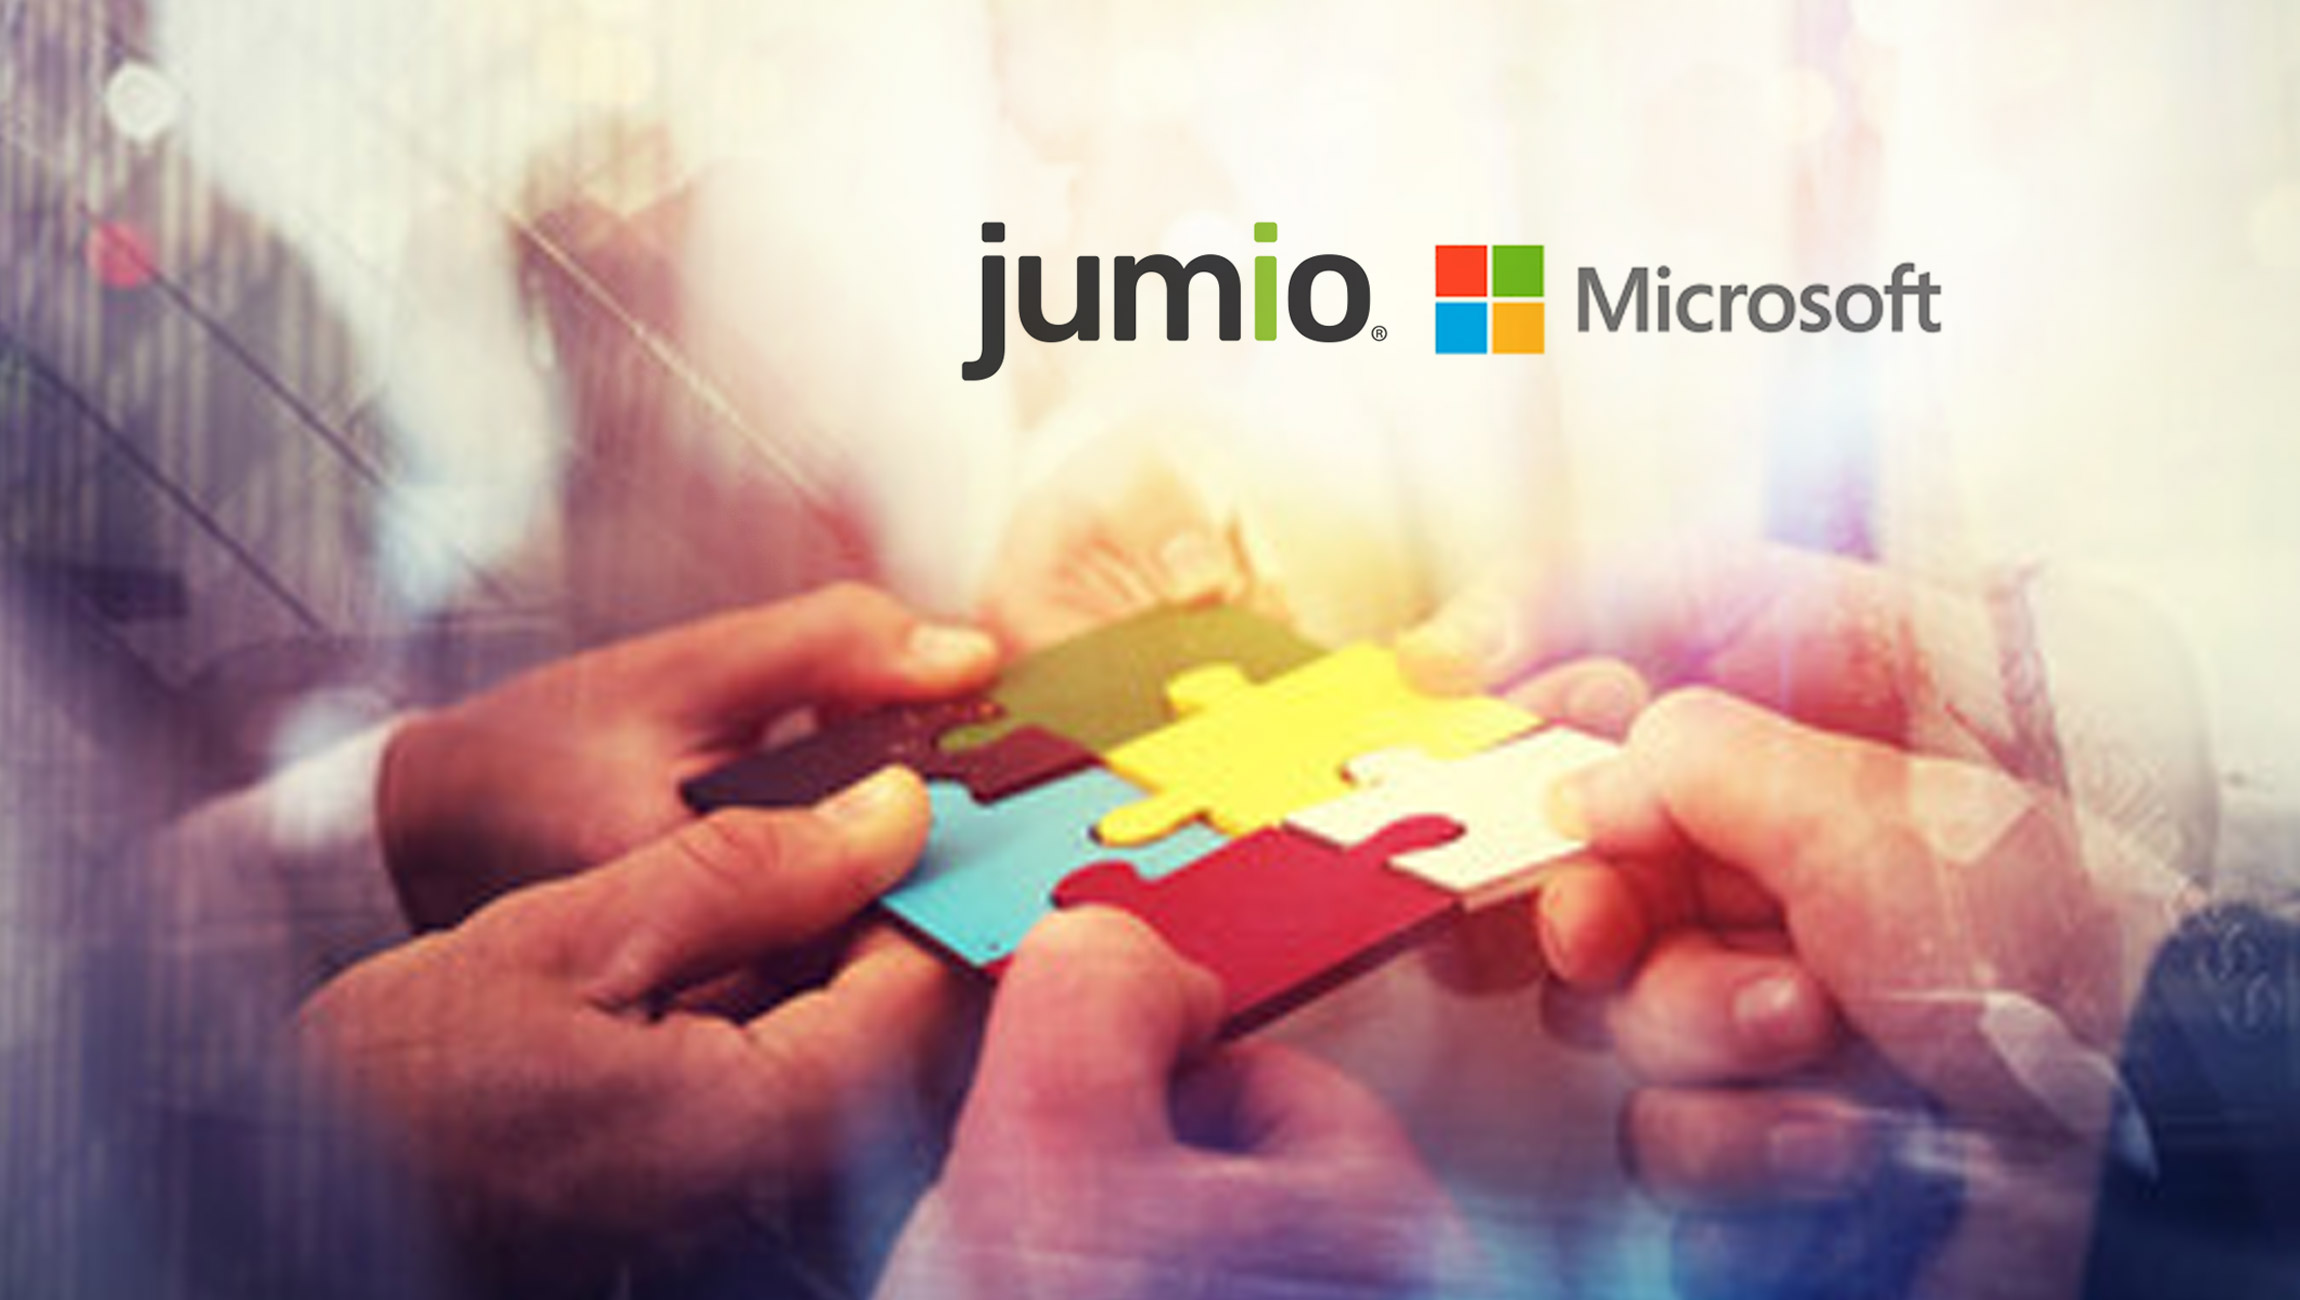 Jumio Collaborates With Microsoft To Deliver On Its Vision Of Decentralized Digital Identity